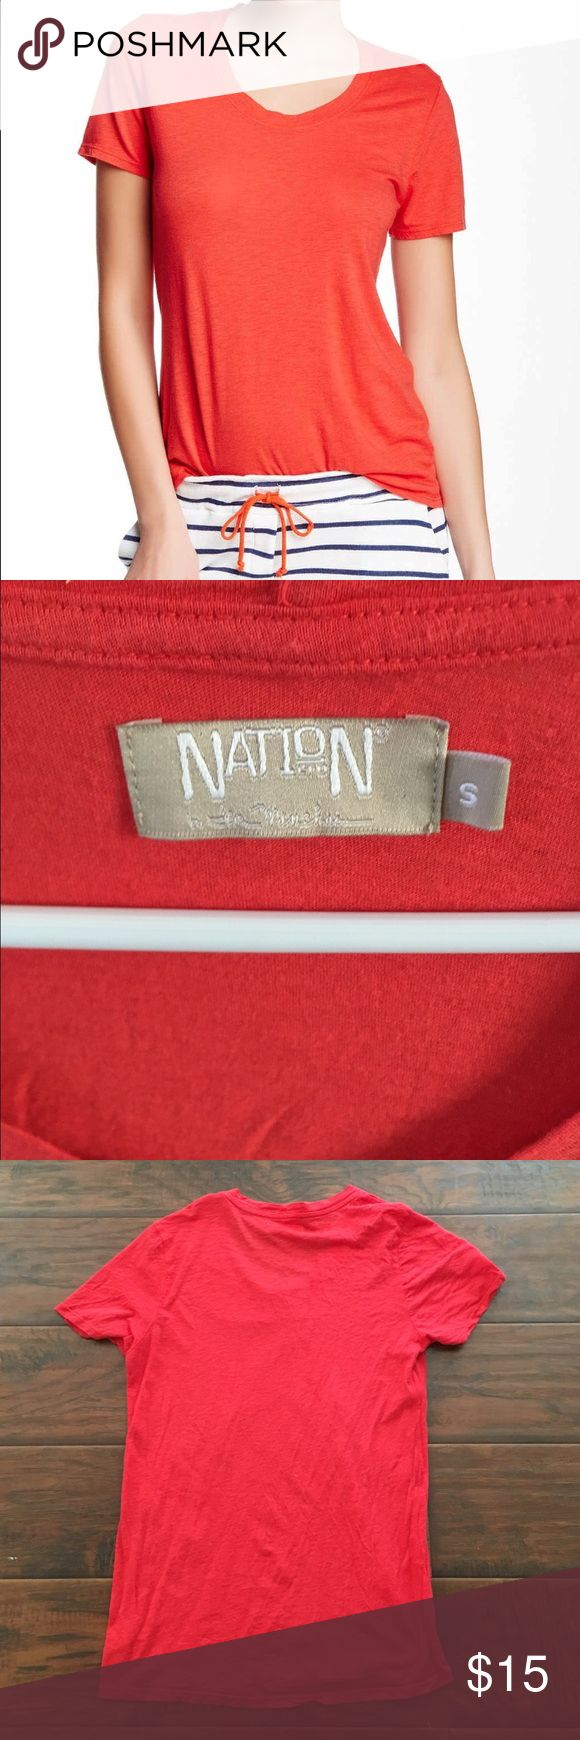 Nation Ltd red short sleeve top In excellent condition! Super cute and soft!! Thanks for looking.💕 Nation Ltd Tops Tees - Short Sleeve